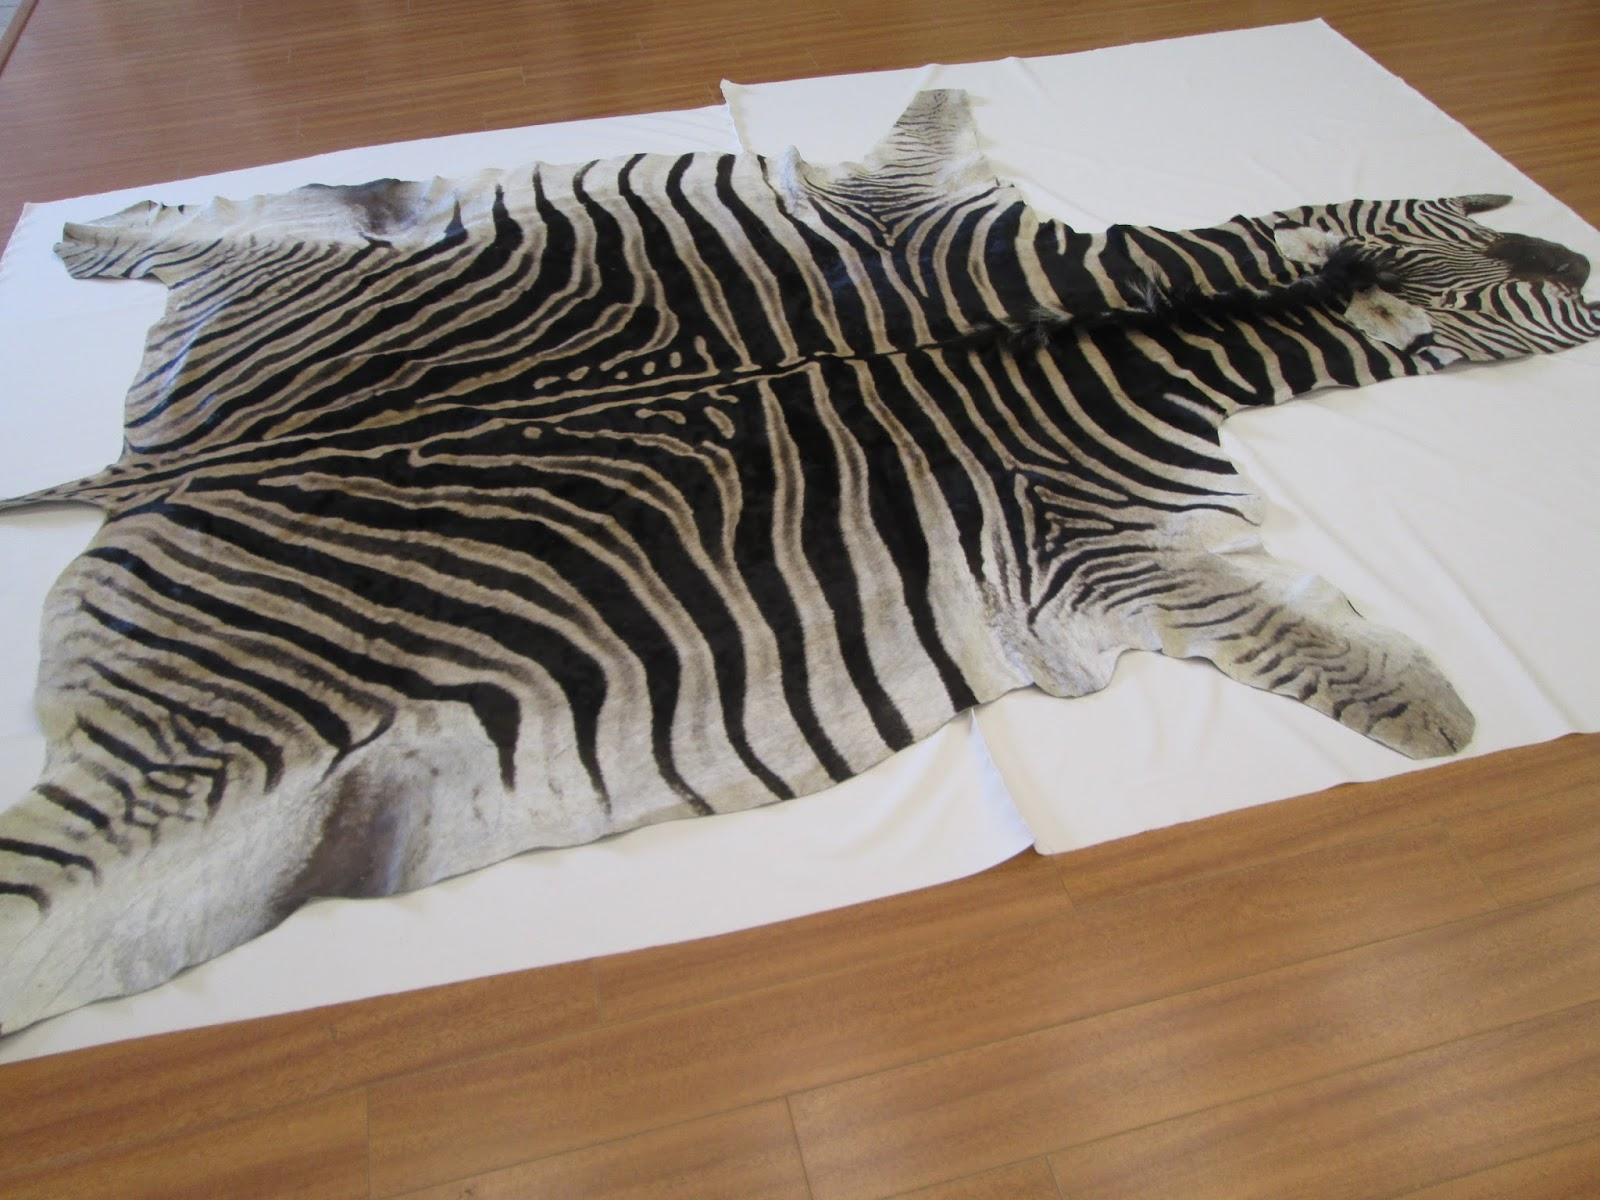 Zebra Hide, Zebra Skin Cleaning And Repair In Los Angeles